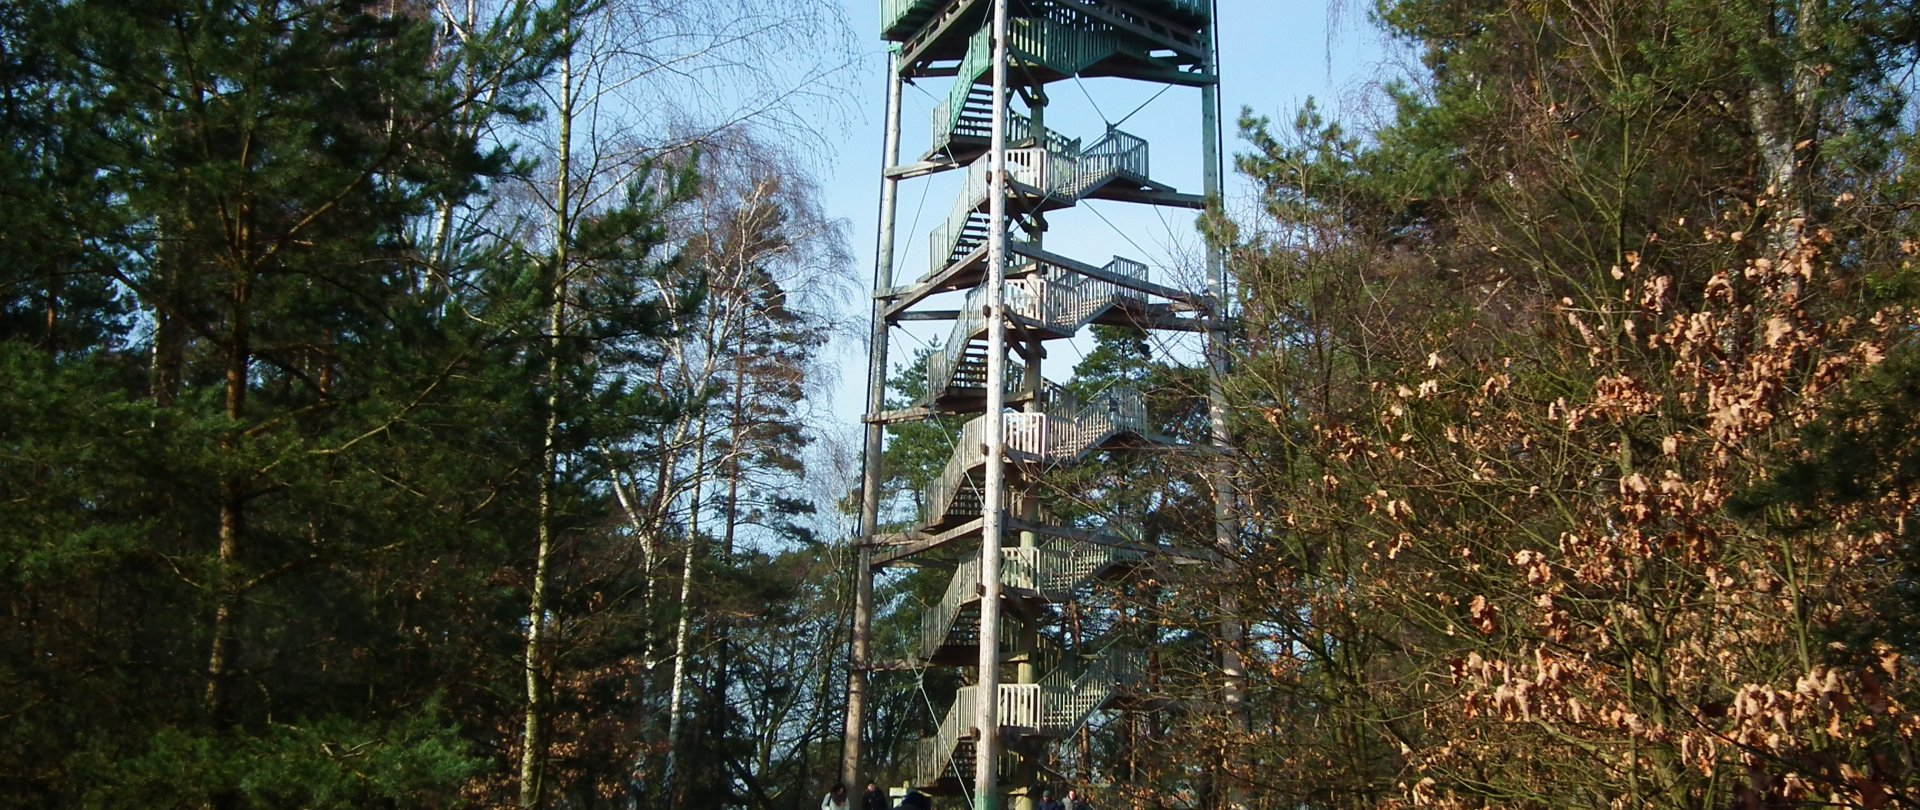 Sightseeing tower (Stary Konin)